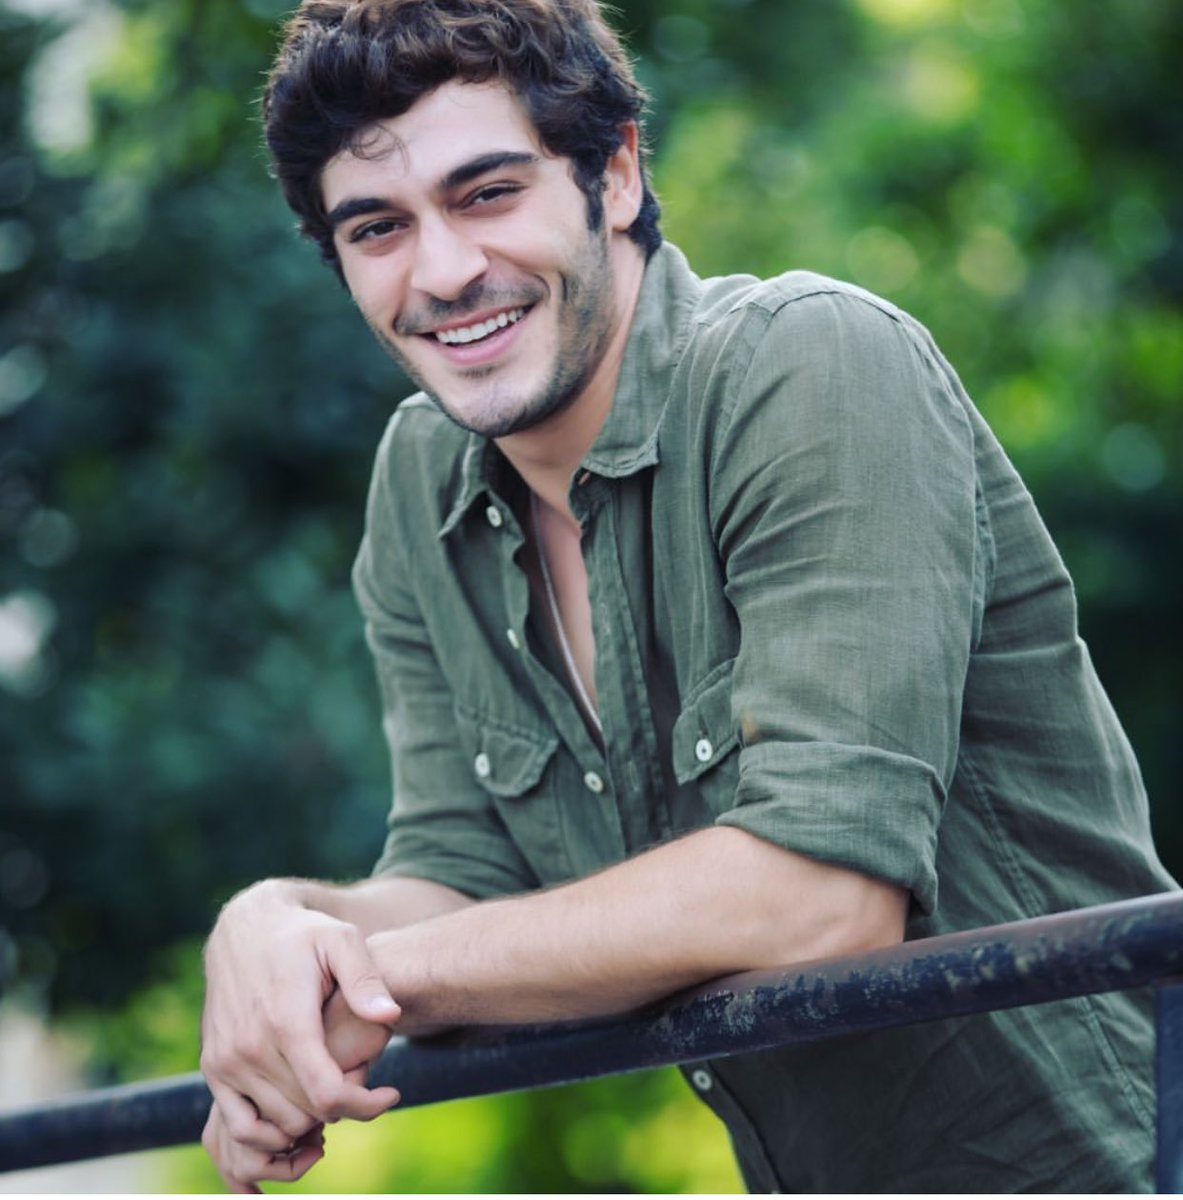 Burak Deniz Bio, Height, Net worth, Age, Family, Girlfriend